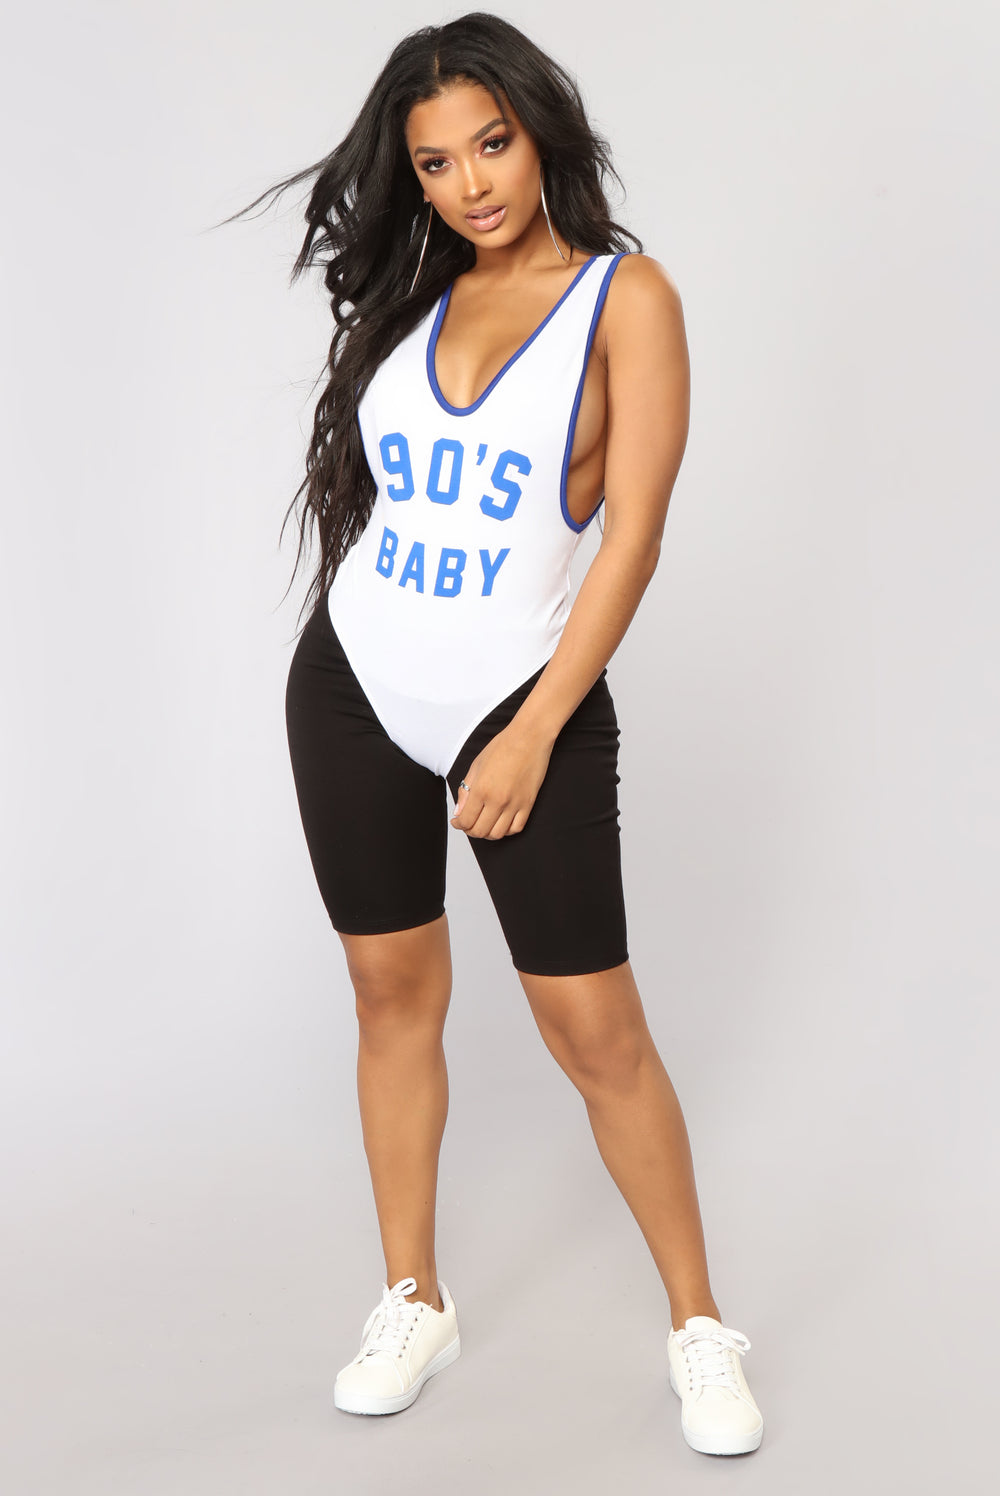 Just A 90's Baby Bodysuit - White